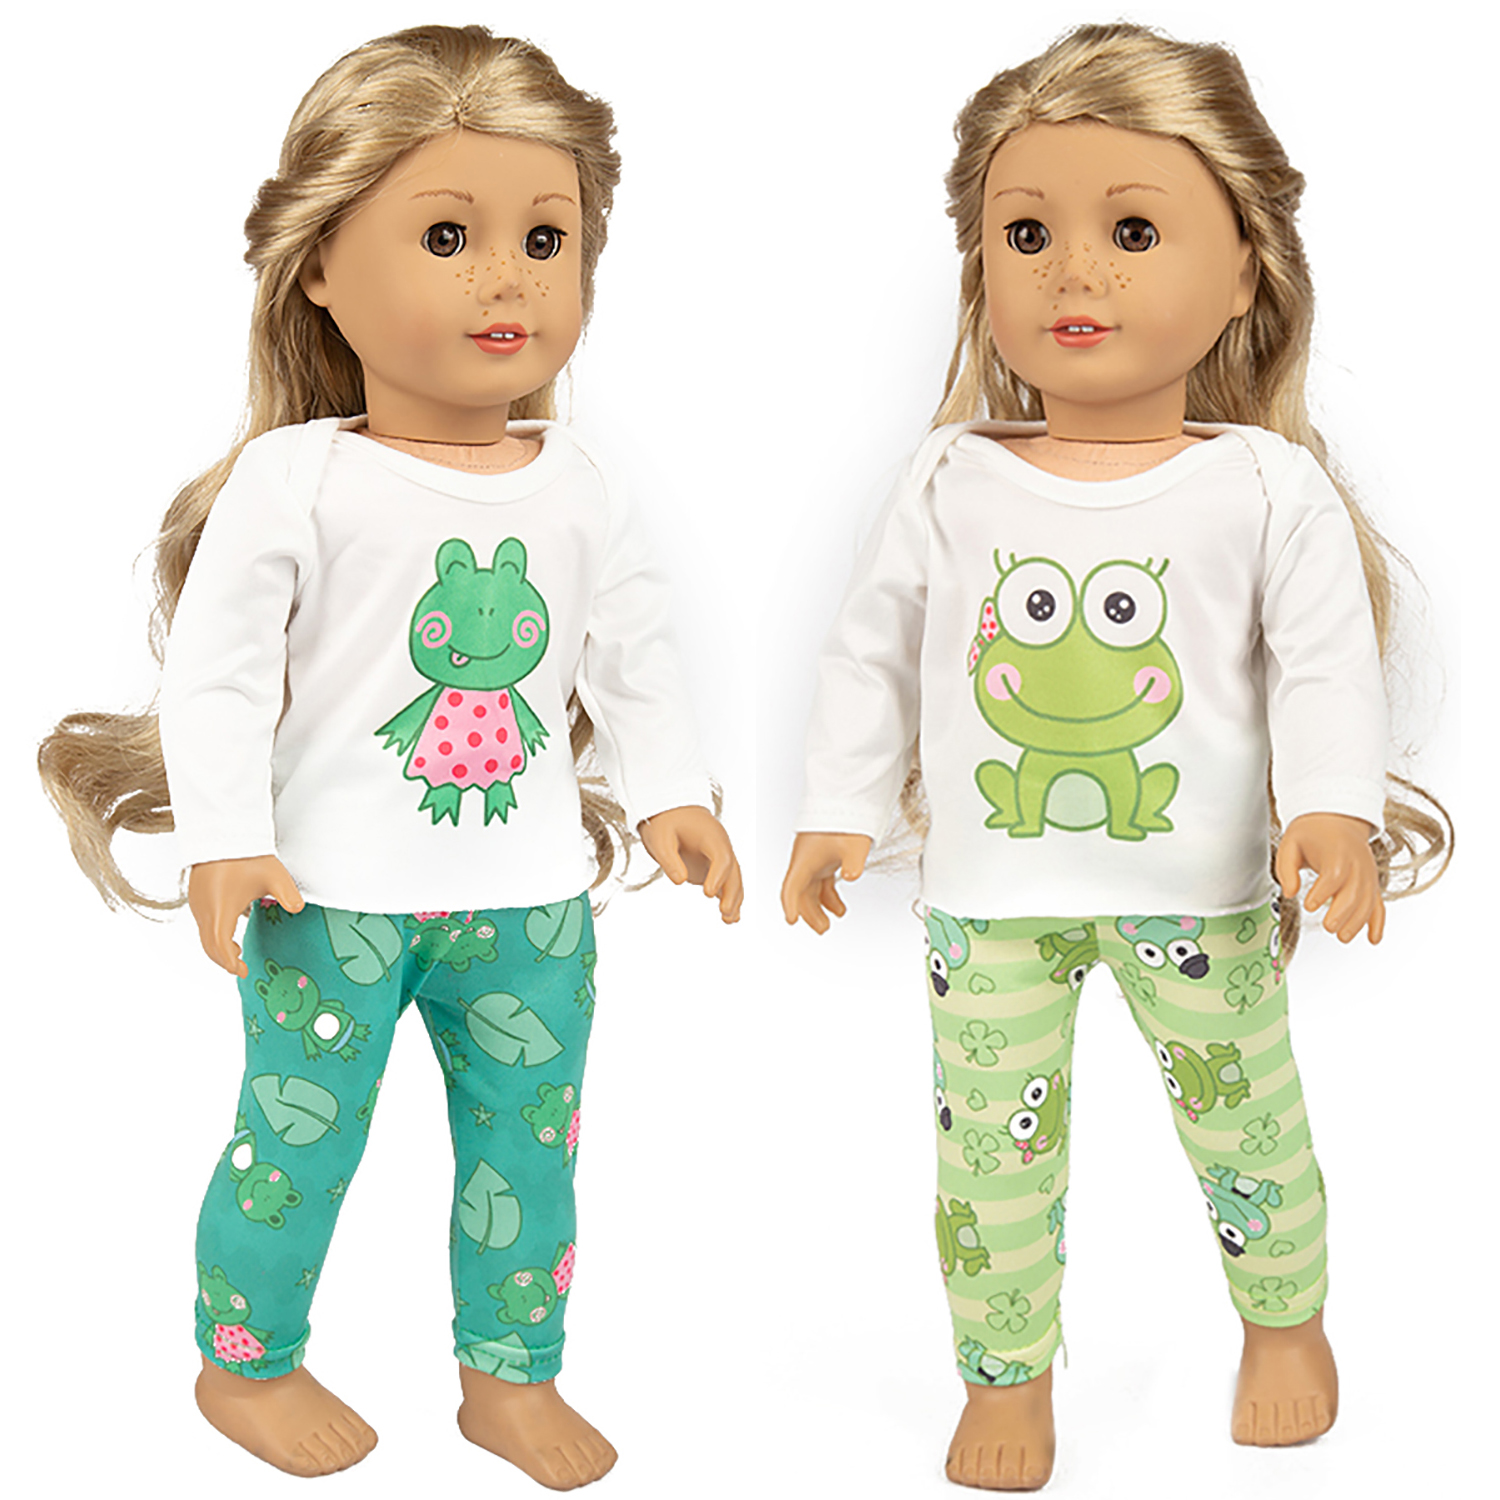 Handmade Fashion Clothes Pajamas Sleepwear for 18 inch American girl doll party